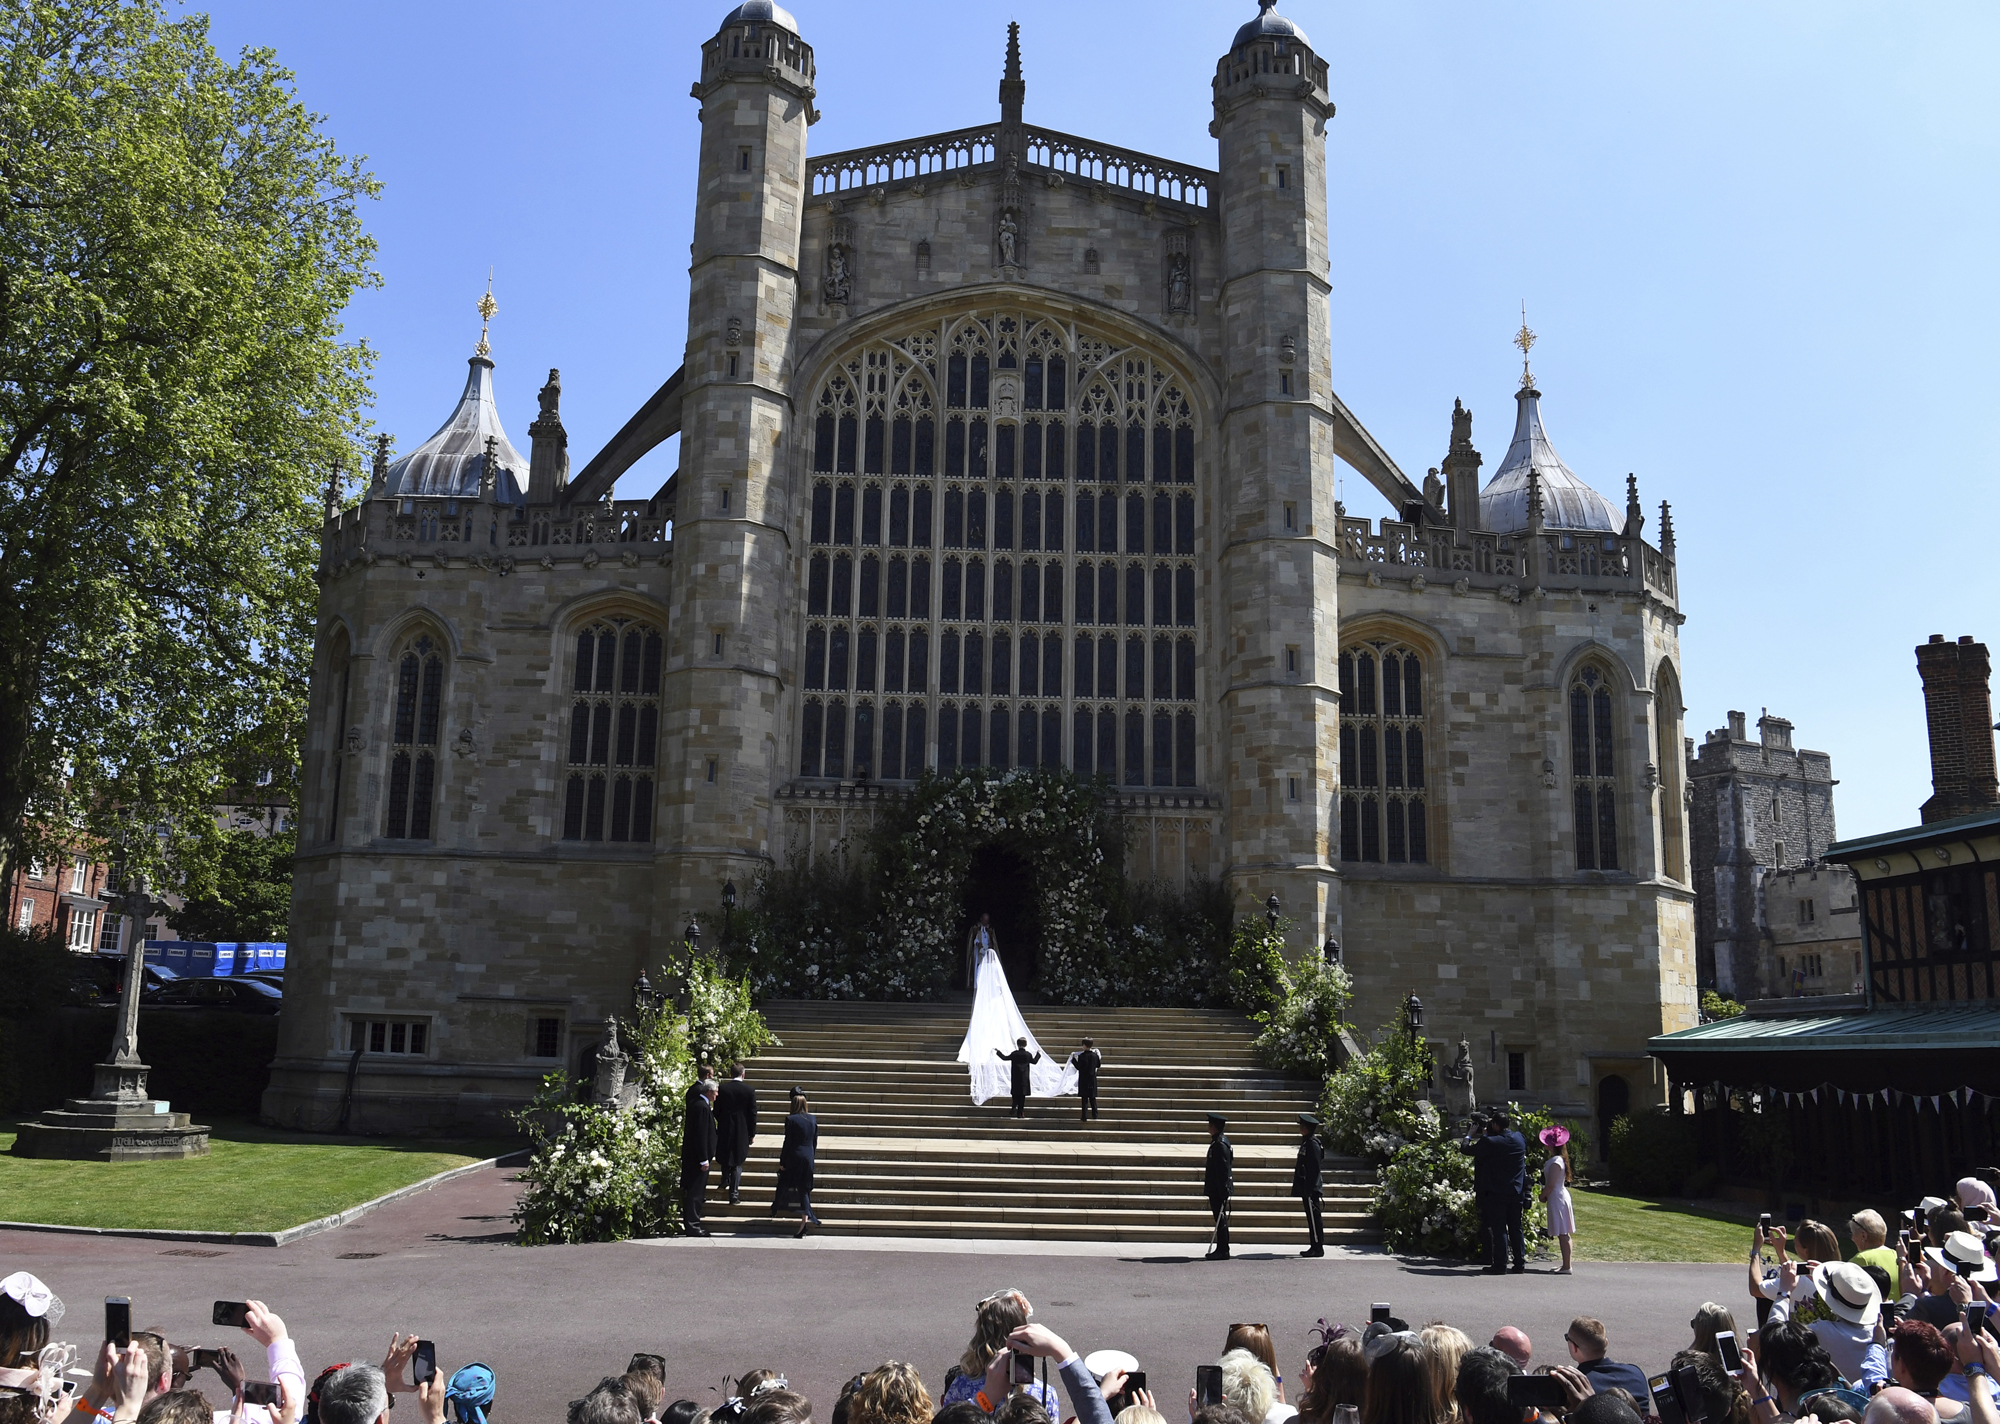 Meghan Markle arriving at St George's Chapel - Windsor